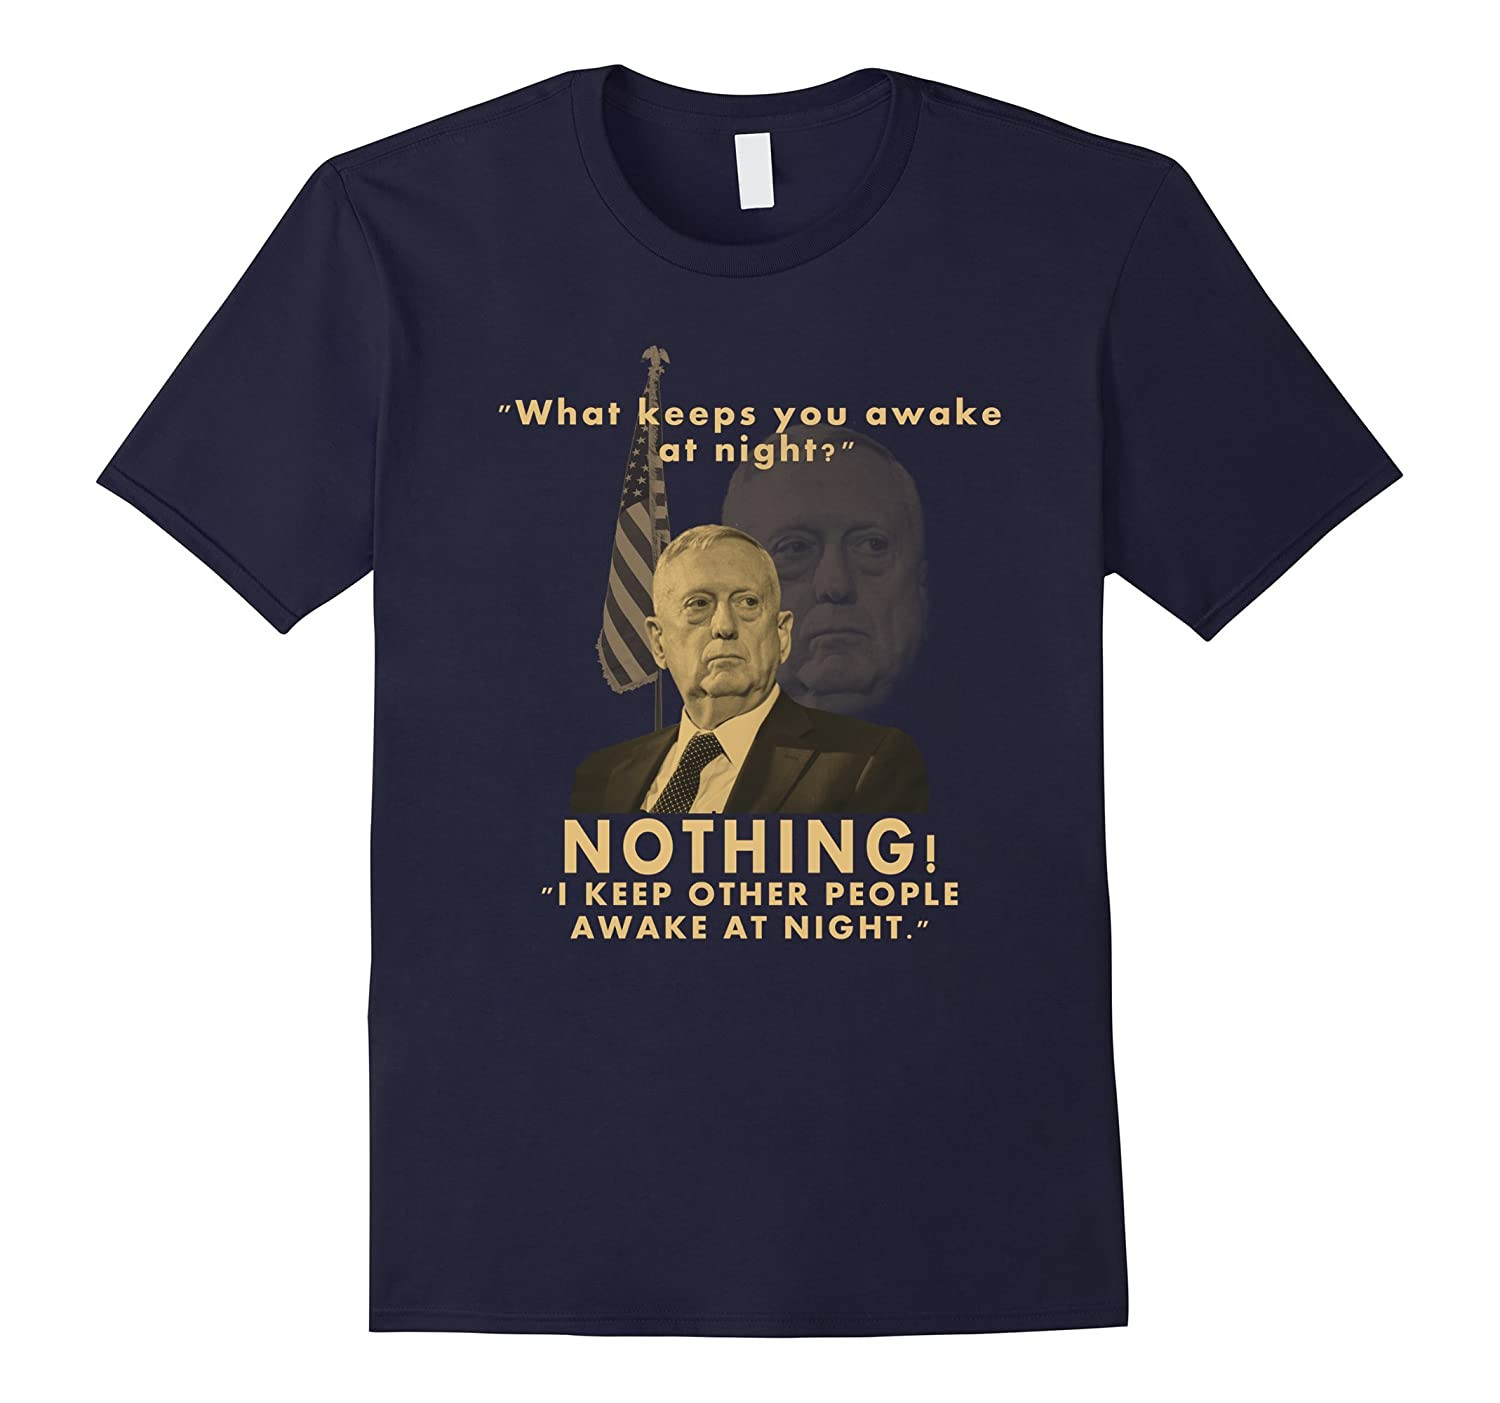 Mad Dog Mattis T-shirt What Keeps You Up At Night? Nothing!-RT